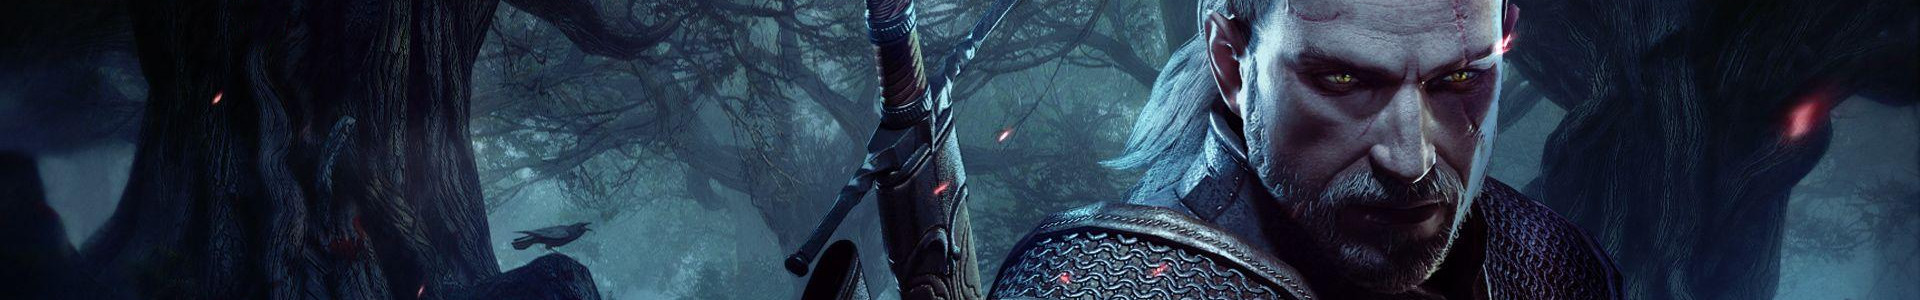 Banner media of The Witcher 3: Wild Hunt video game.